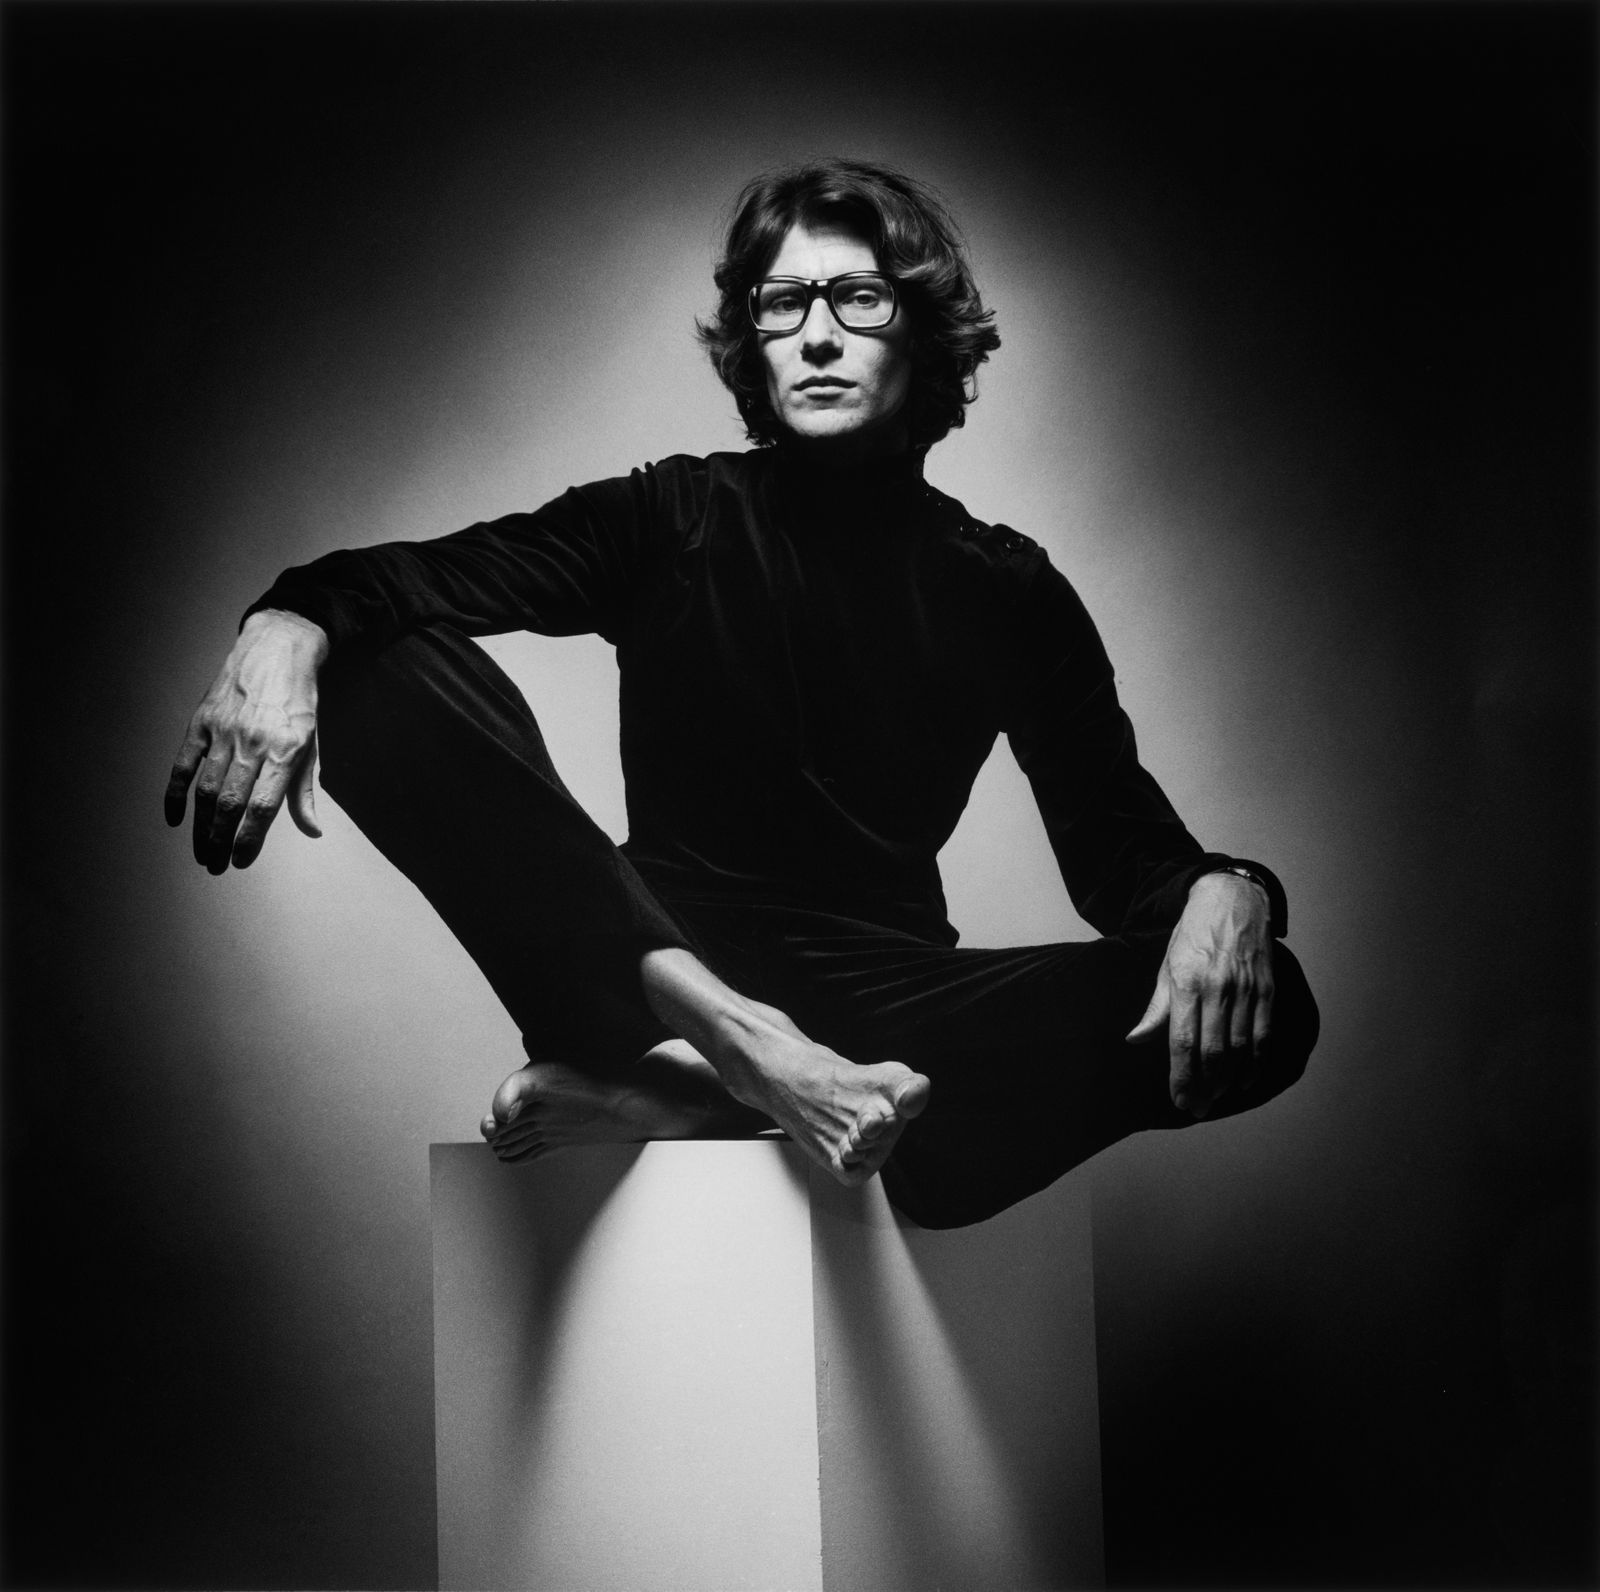 l 39 1 agosto 1936 nato yves saint laurent buon compleanno. Black Bedroom Furniture Sets. Home Design Ideas